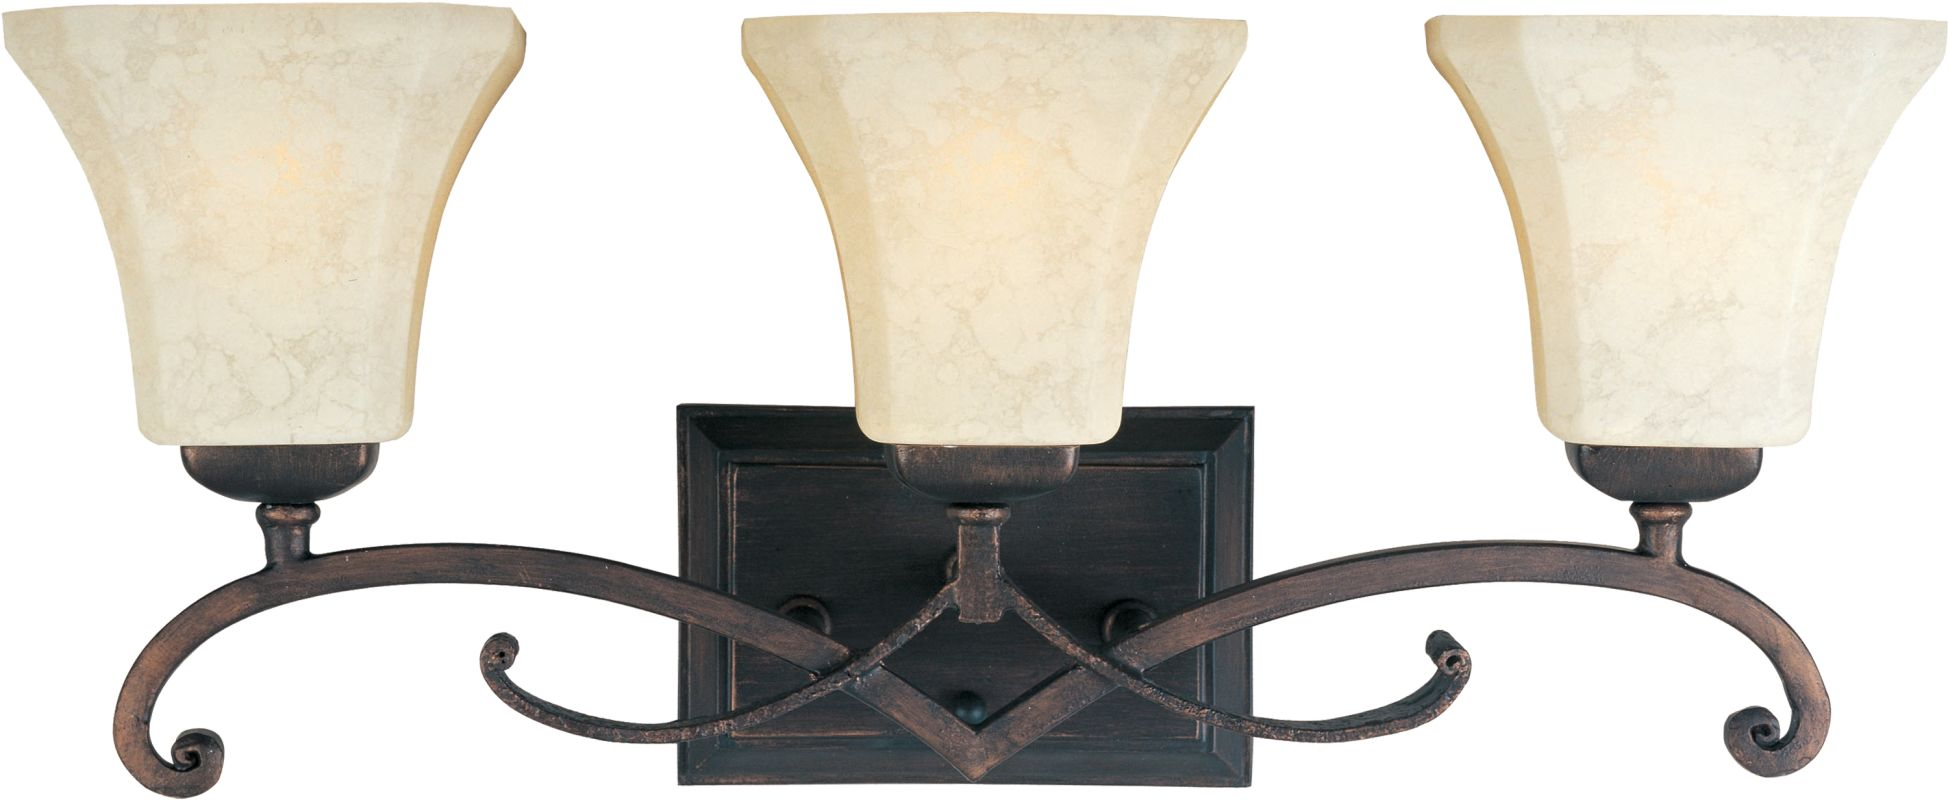 "Maxim 21073 3 Light 23.5"" Wide Bathroom Fixture from the Oak Harbor"